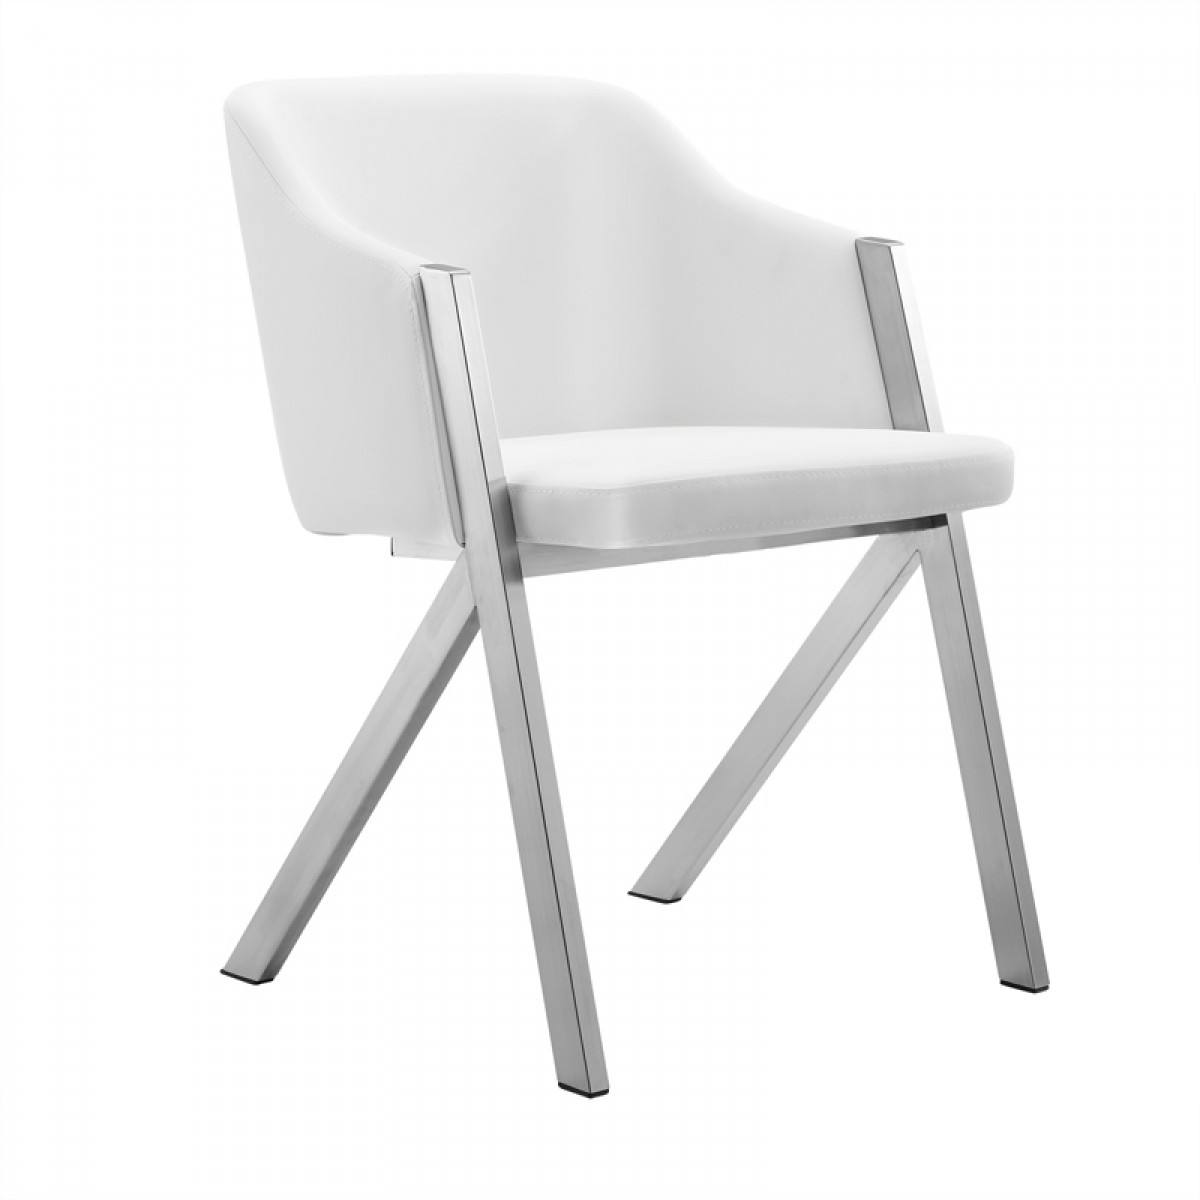 Prime Modrest Darcy Modern White Leatherette Dining Chair Set Of 2 Ibusinesslaw Wood Chair Design Ideas Ibusinesslaworg